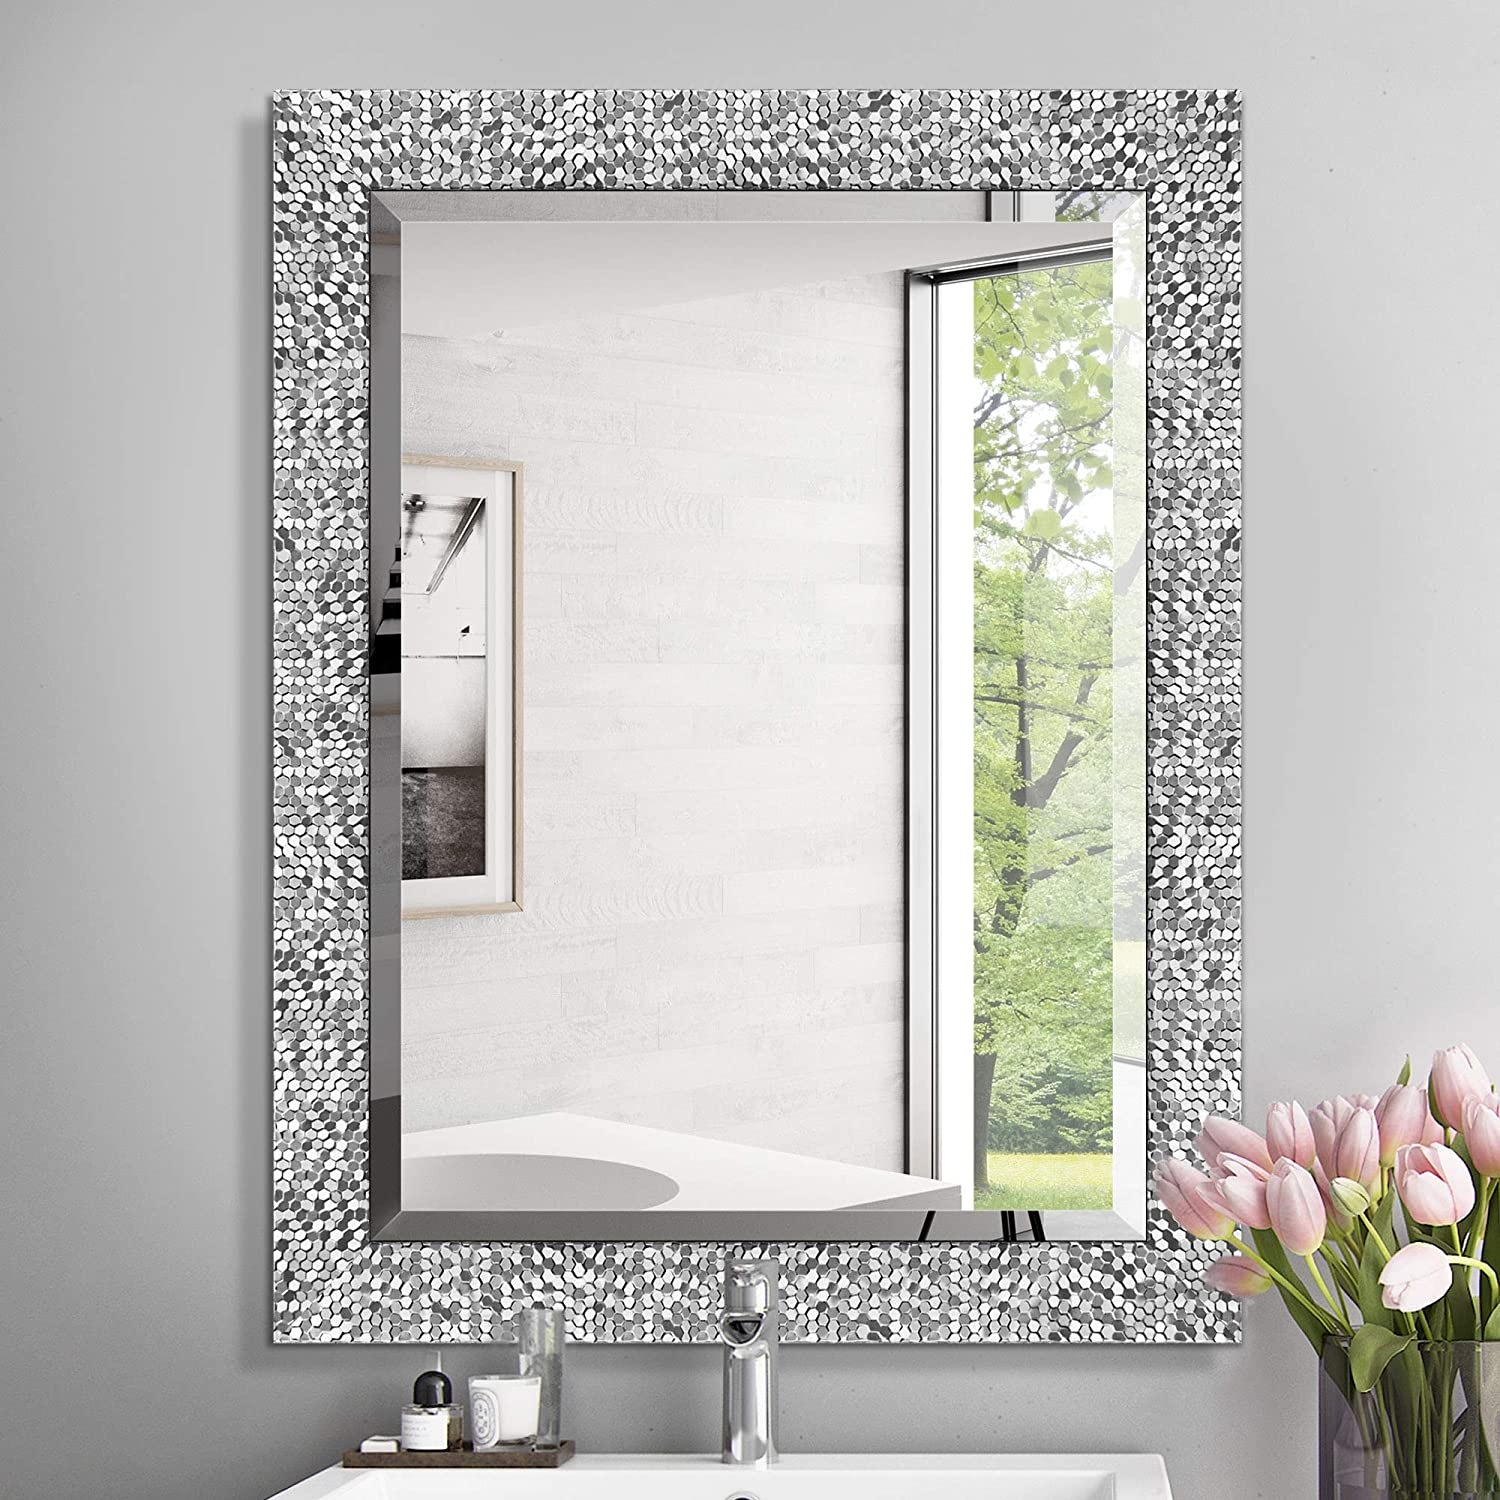 Mirror Trend 24 X 32 Inches Silver Beveled Mirrors For Wall Mirrors For Living Room Large Bathroom Mirrors Wall Mounted Mosaic Design Mirror For Wall Decorative Silver Furniture Decor